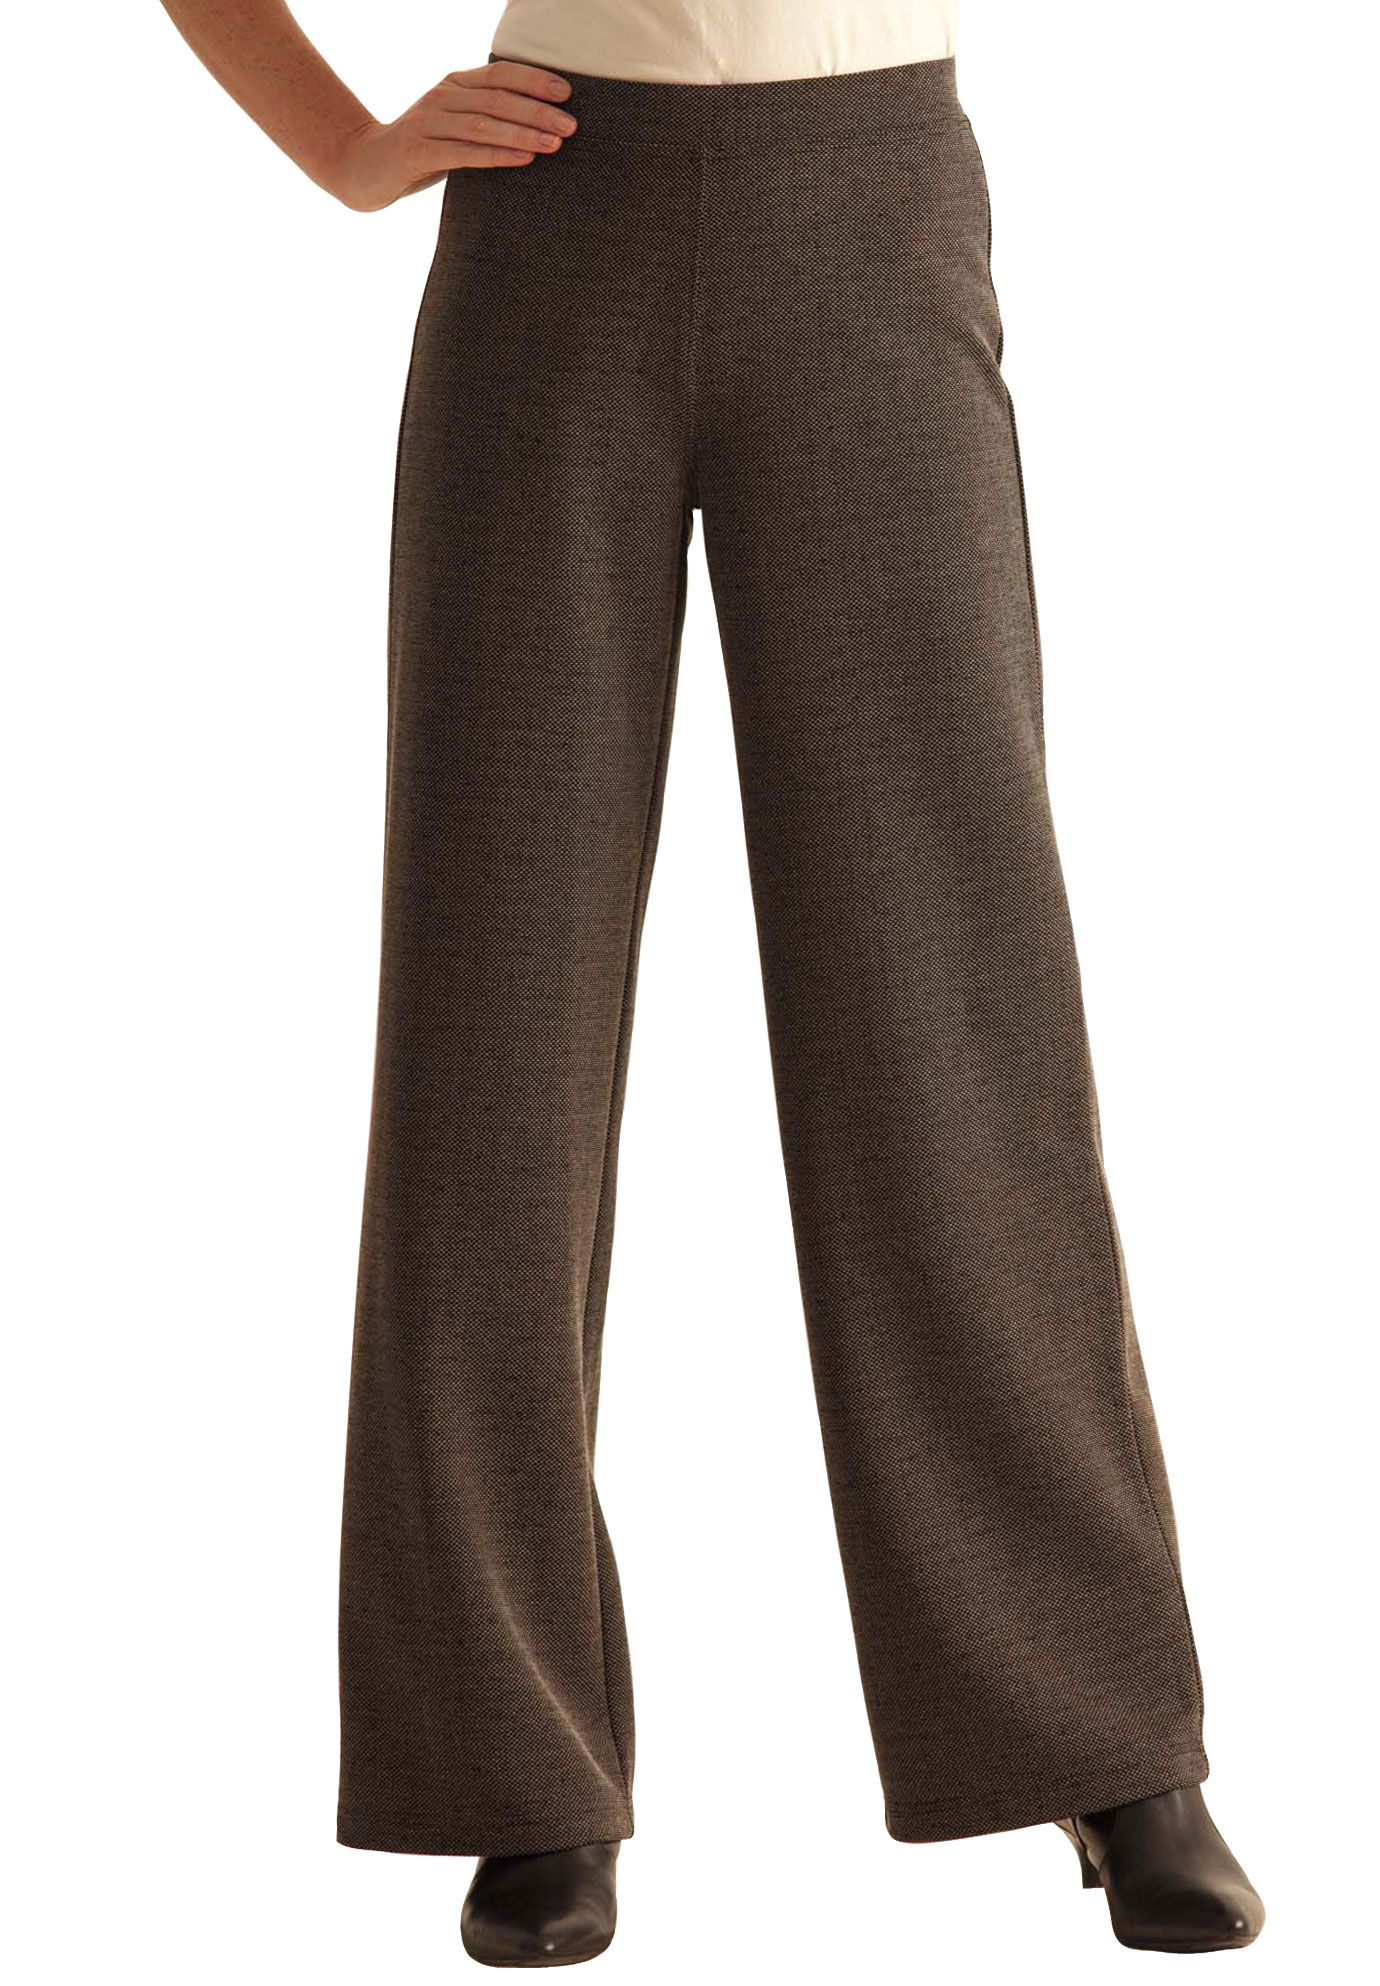 7c878c4e0fd98 Plus Size Pants in stretchy ponte knit image. Plus Size Pants in stretchy  ponte knit image Tall Pants